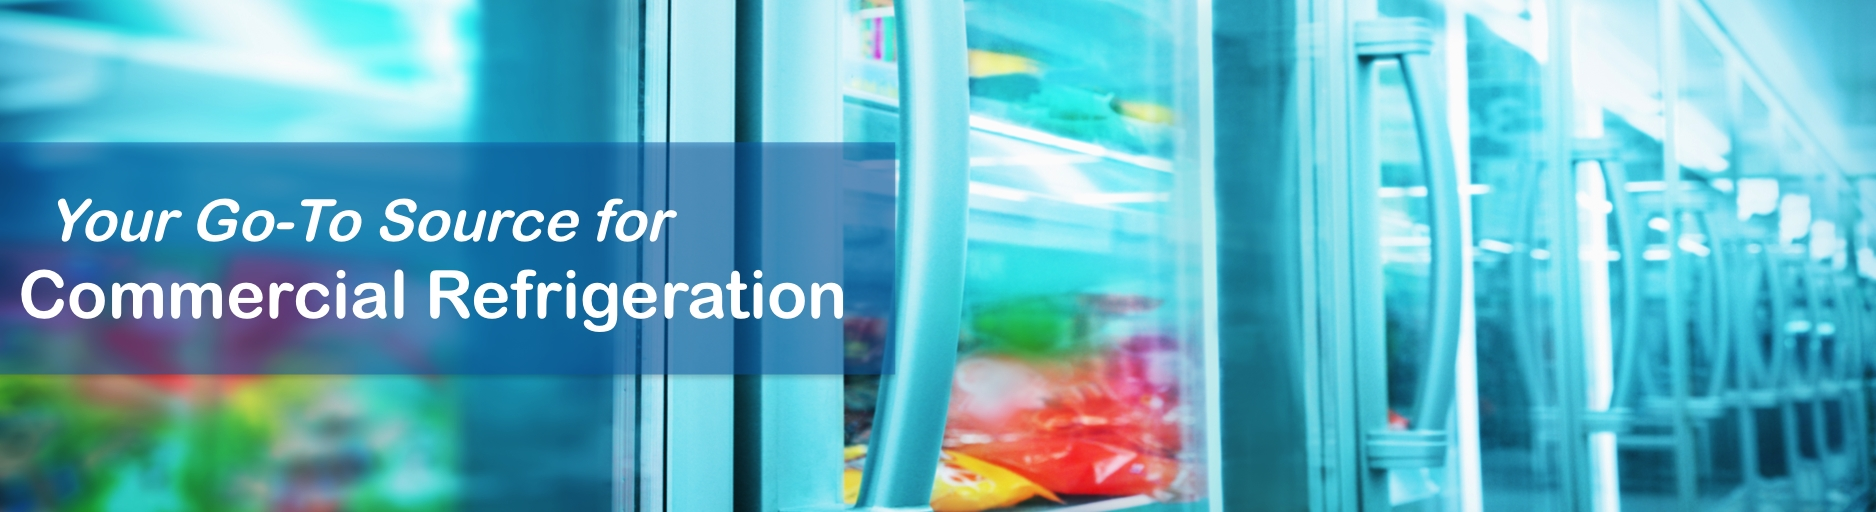 Commercial Refrigeration - Macomb, St. Clair County, MI